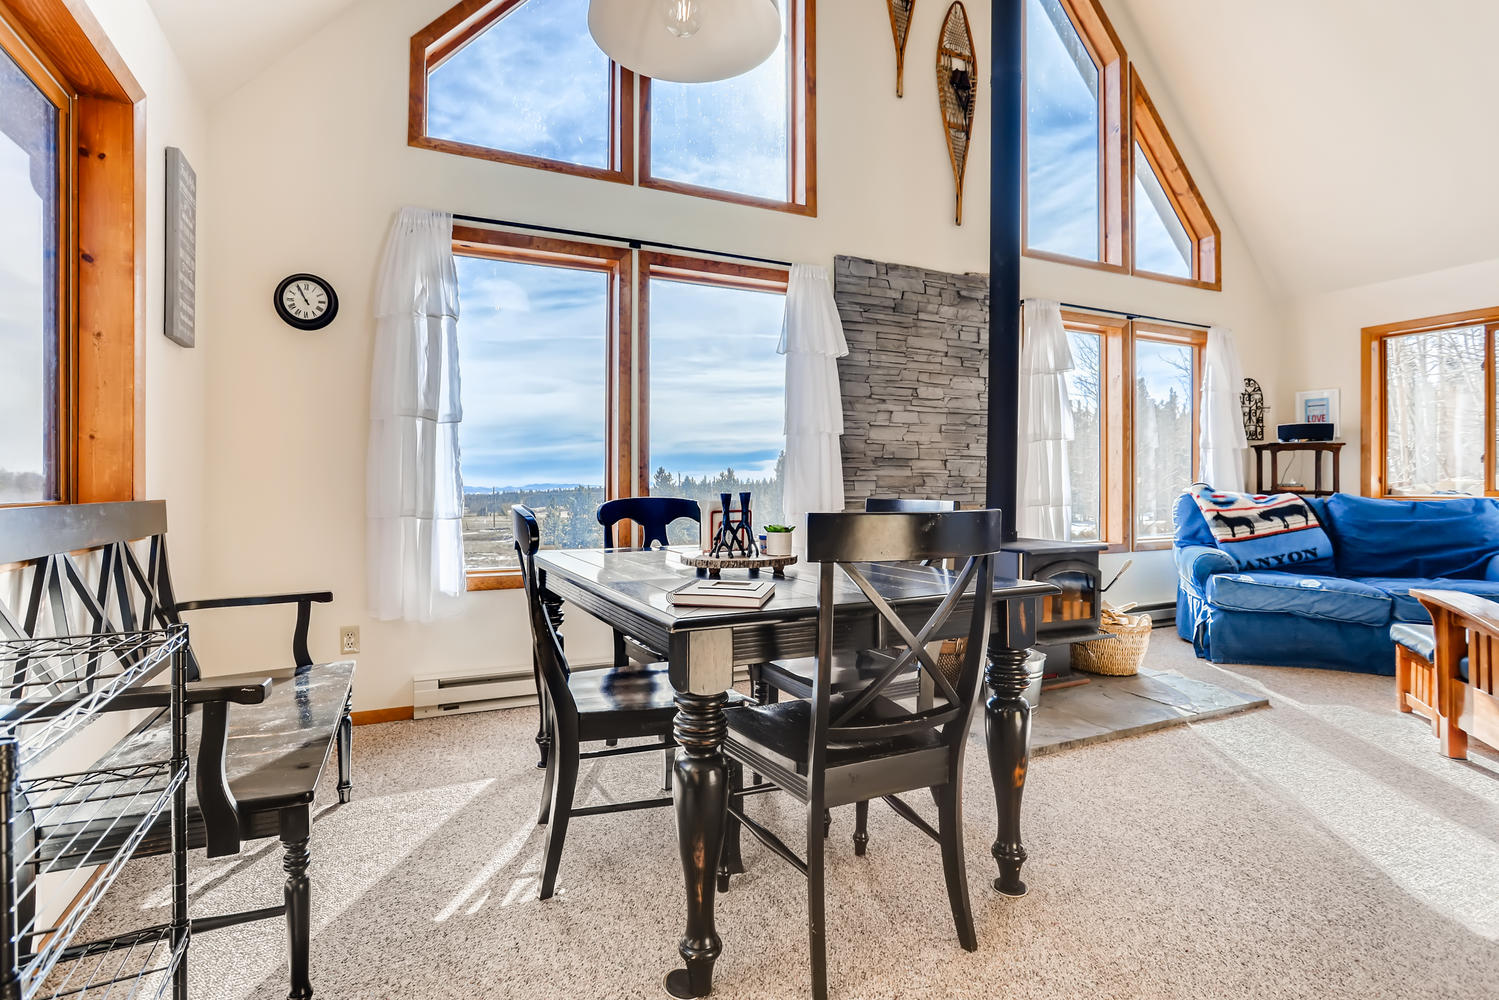 Plenty of area for dining with Mountain VIews!